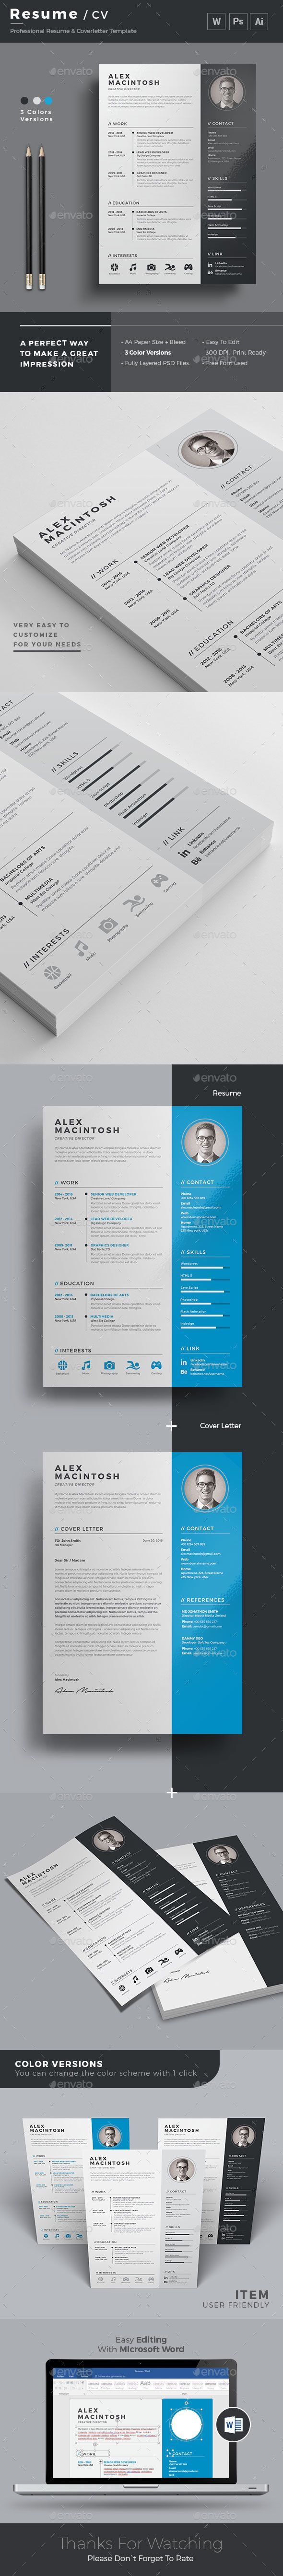 receptionist sample resume%0A Resume Template PSD  MS Word  Download here  http   graphicriver